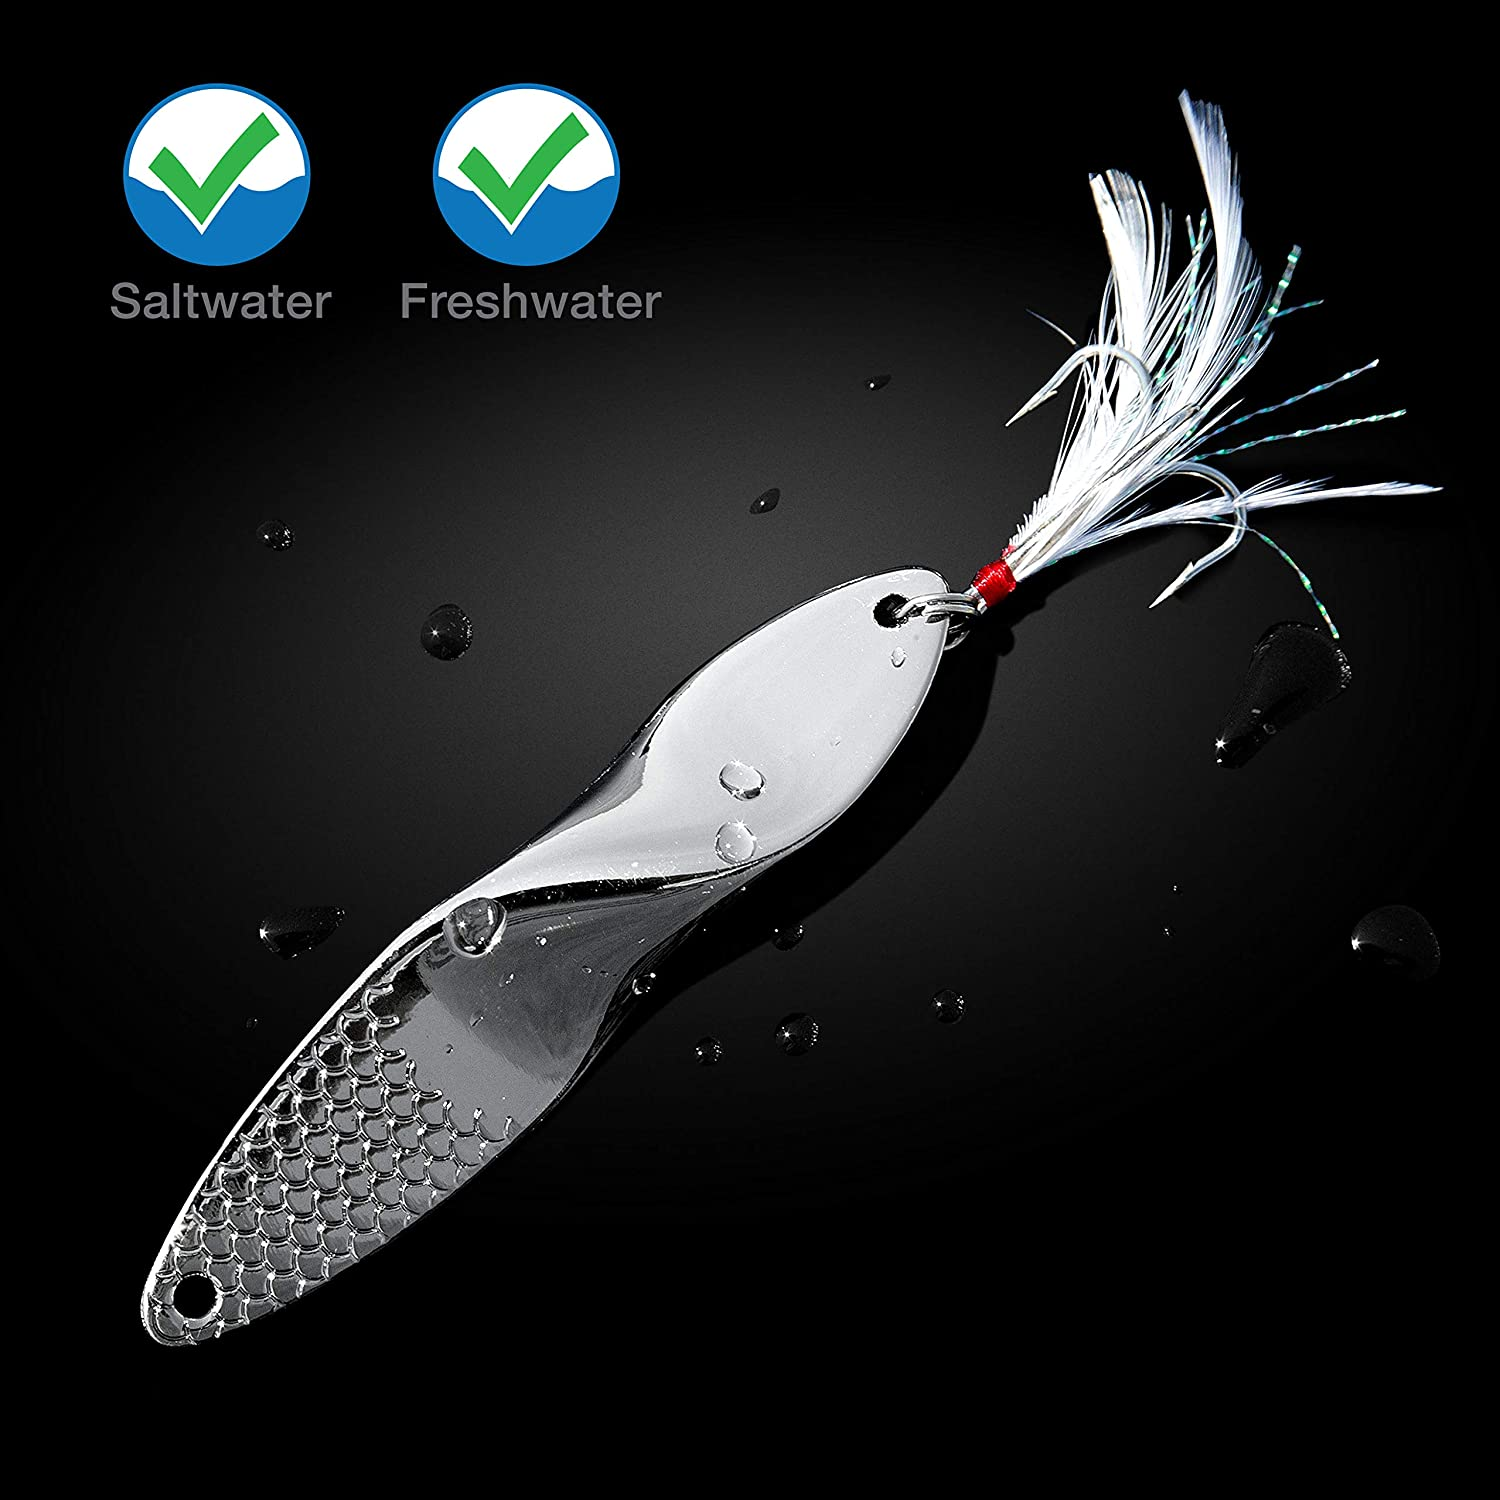 Propeller Lure Fishing Lures Set of 2 Trout Spoons Saltwater Treble Hooks Bass Metal Fishing Lure Silver 1.4-Ounce